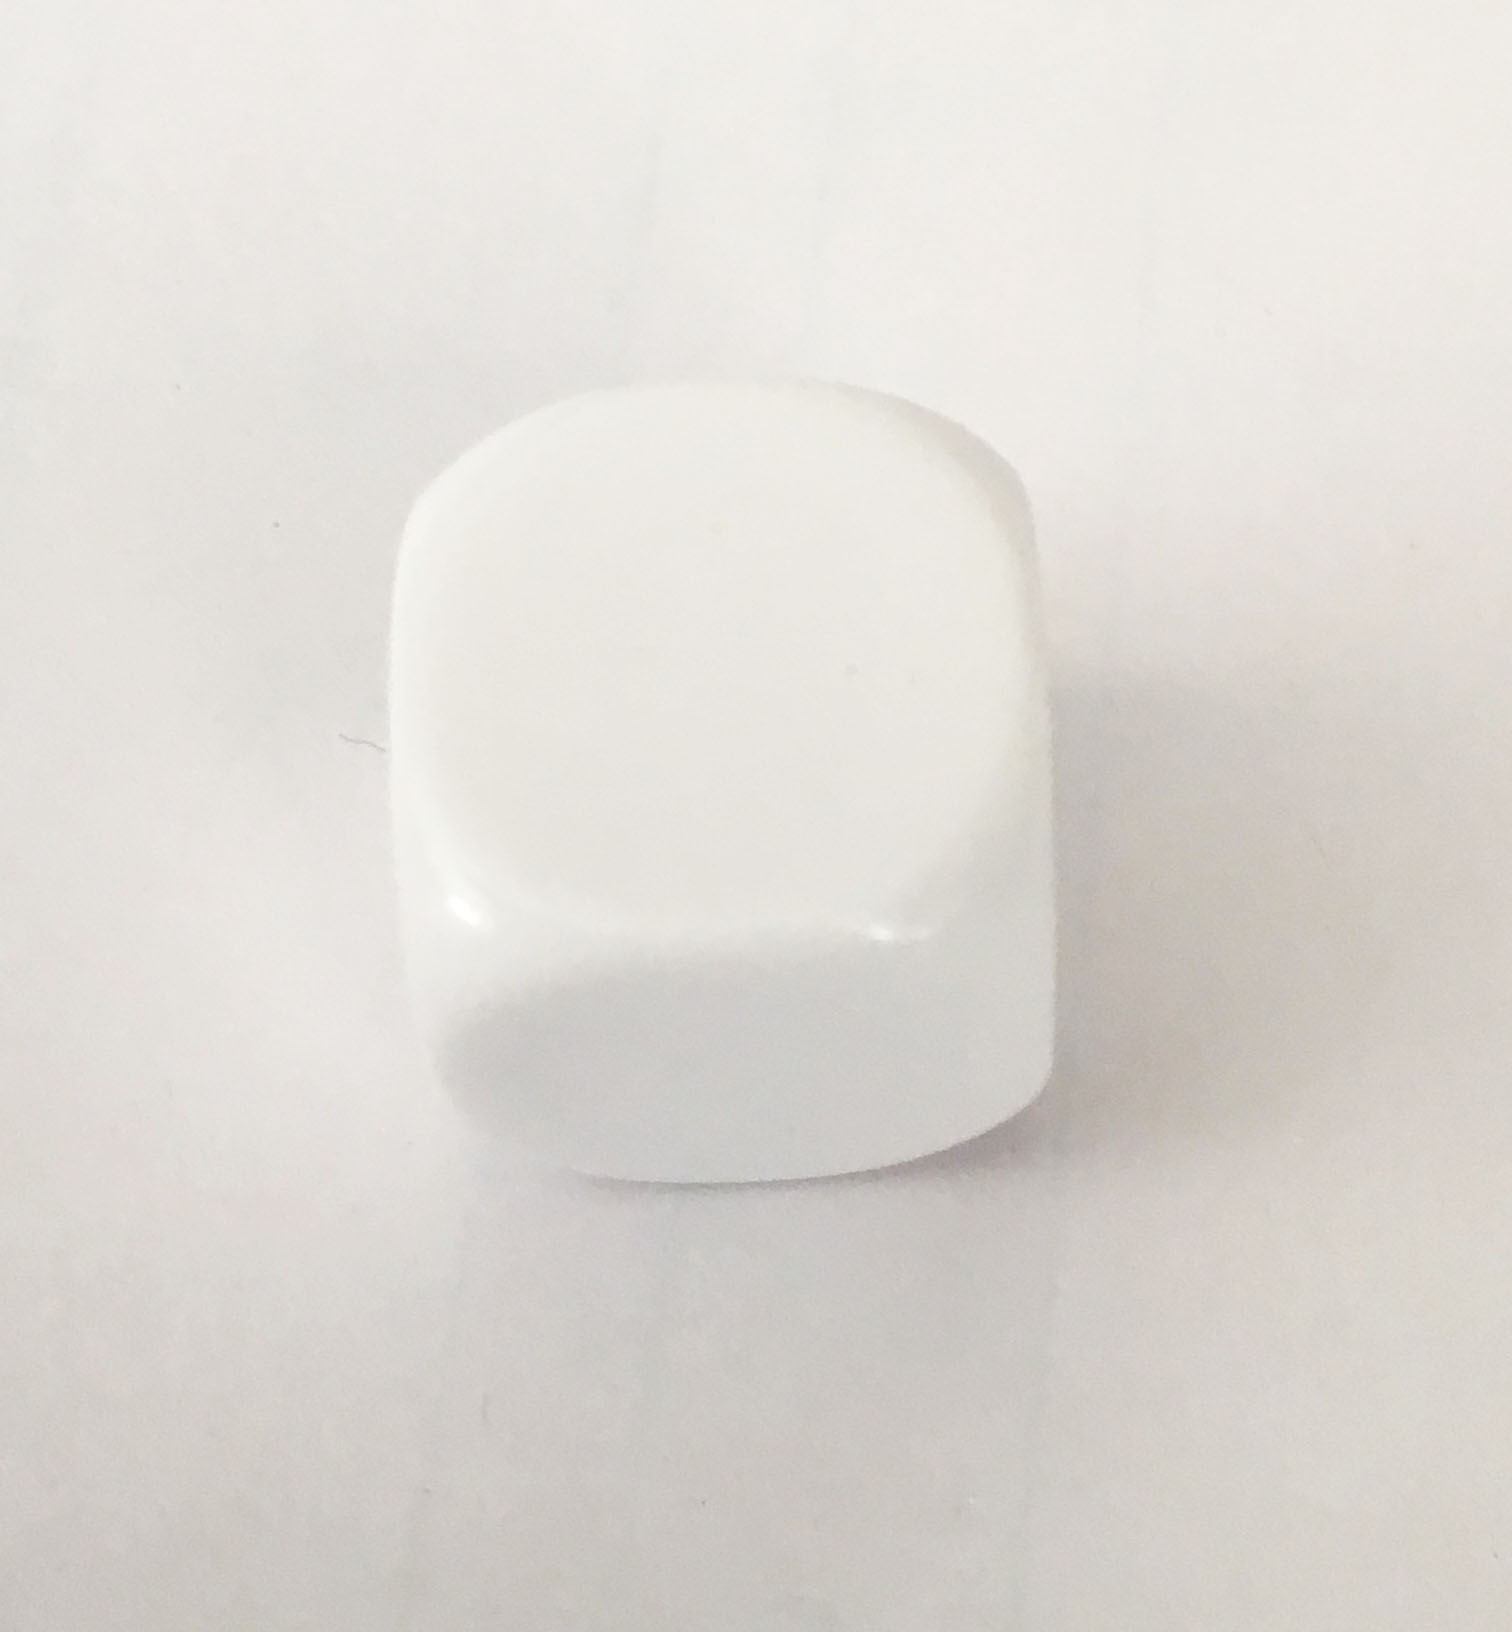 14mm Blank White Single